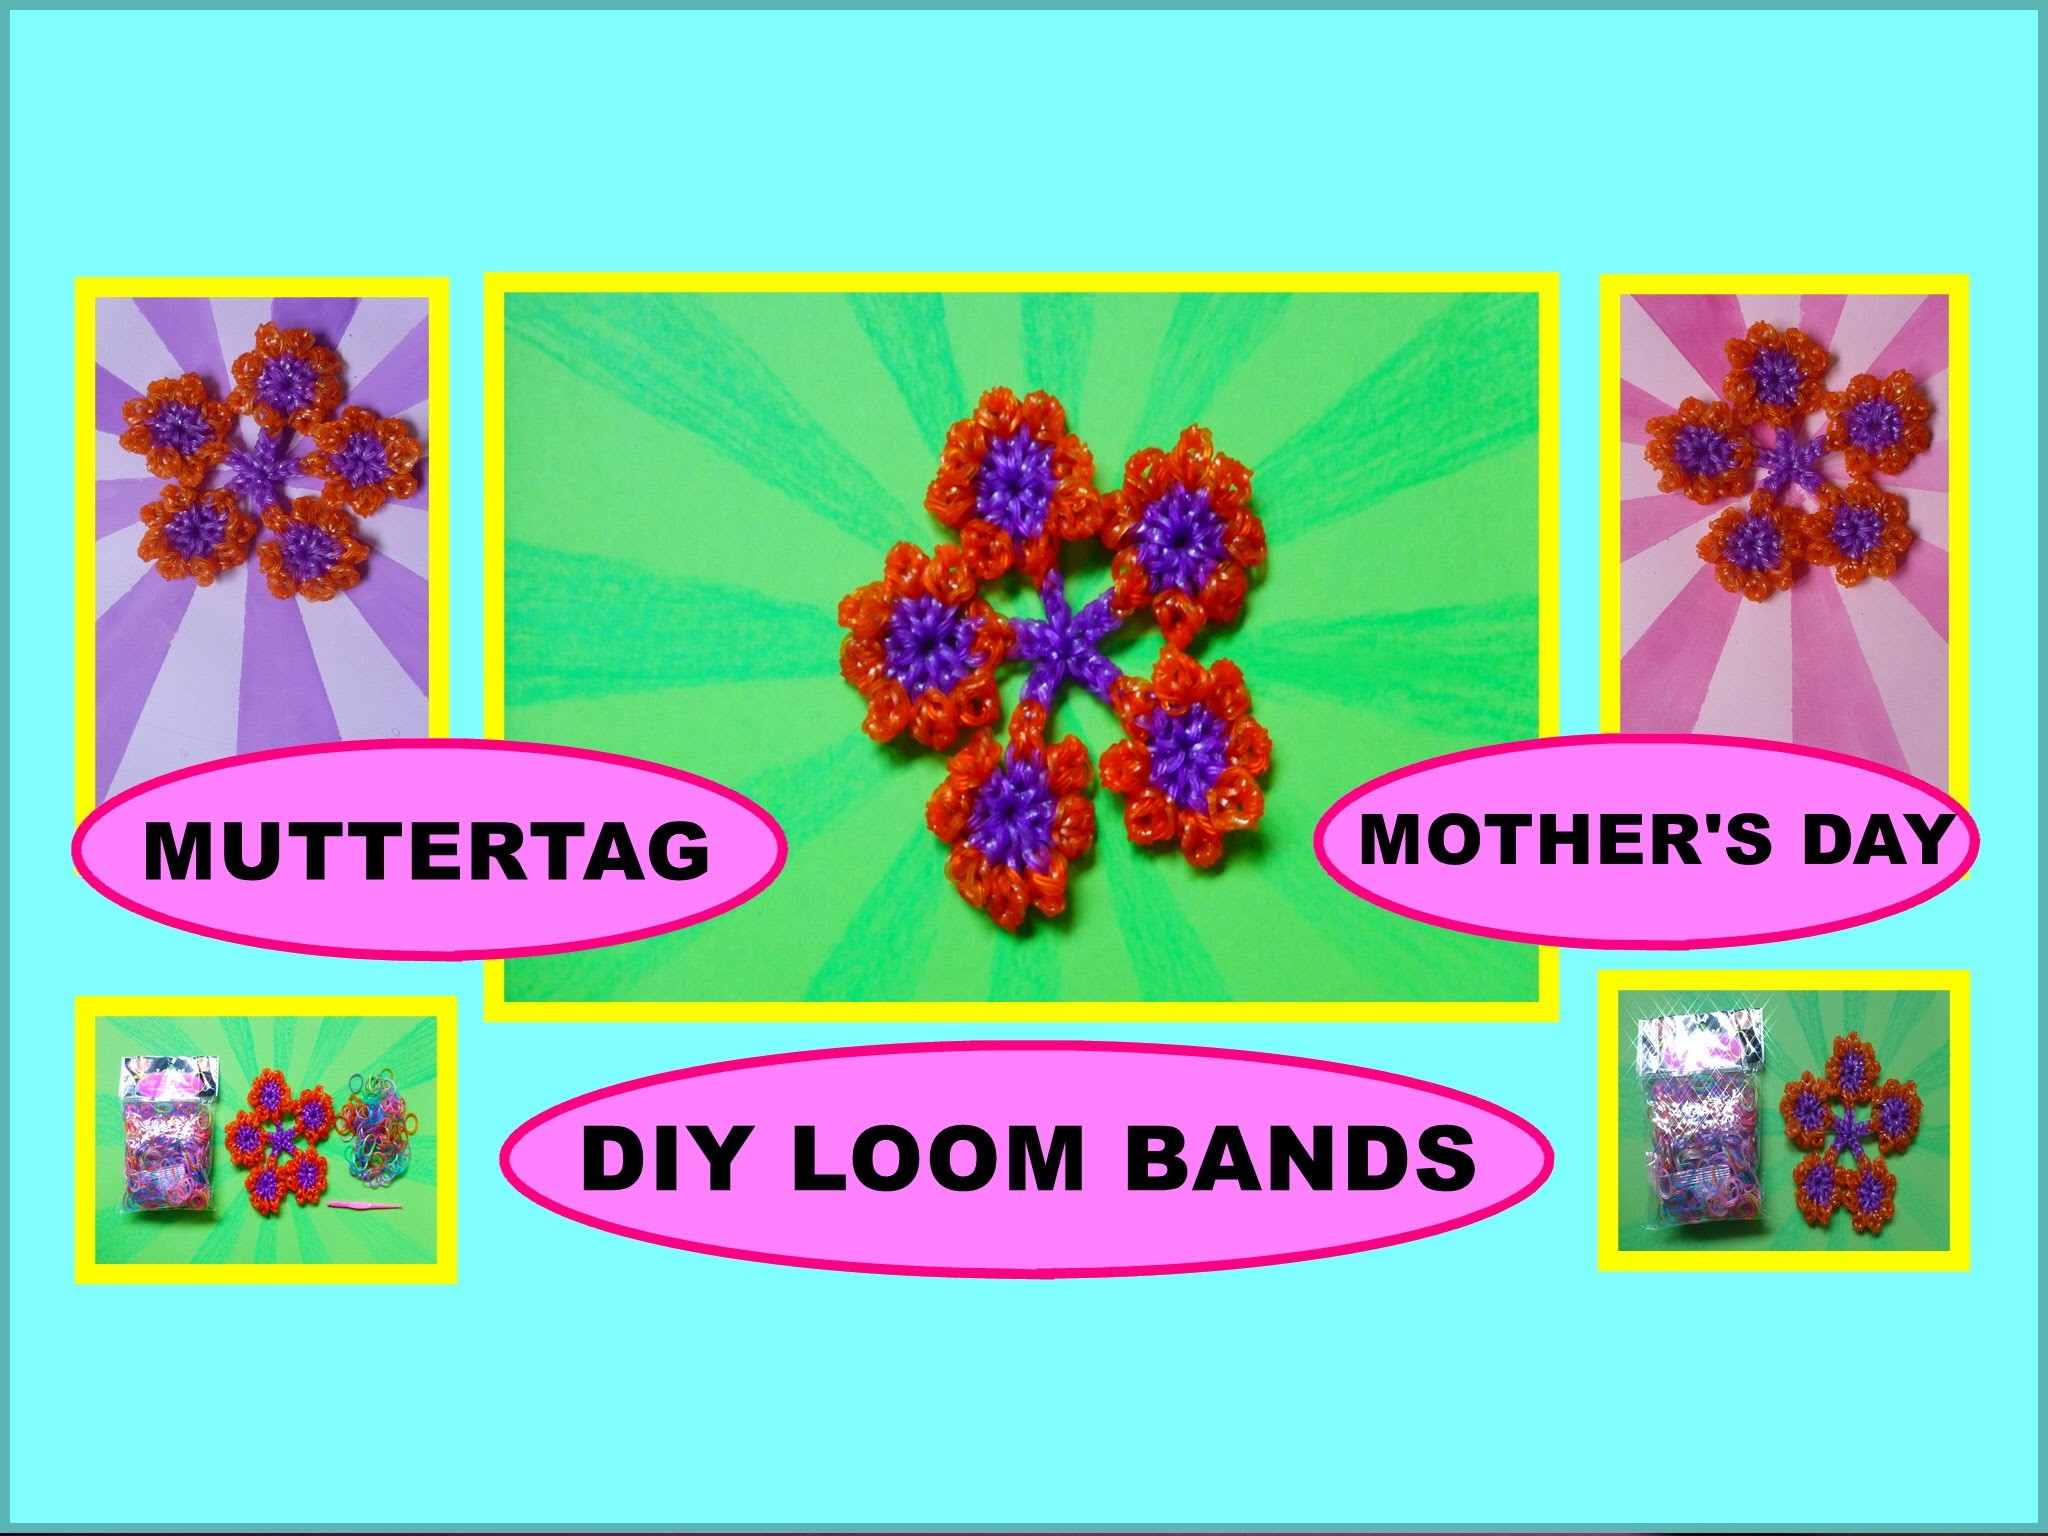 DIY LOOM BANDS Blumen, Geschenk zum Muttertag, Flower, Gift Ideas for Mother's Day